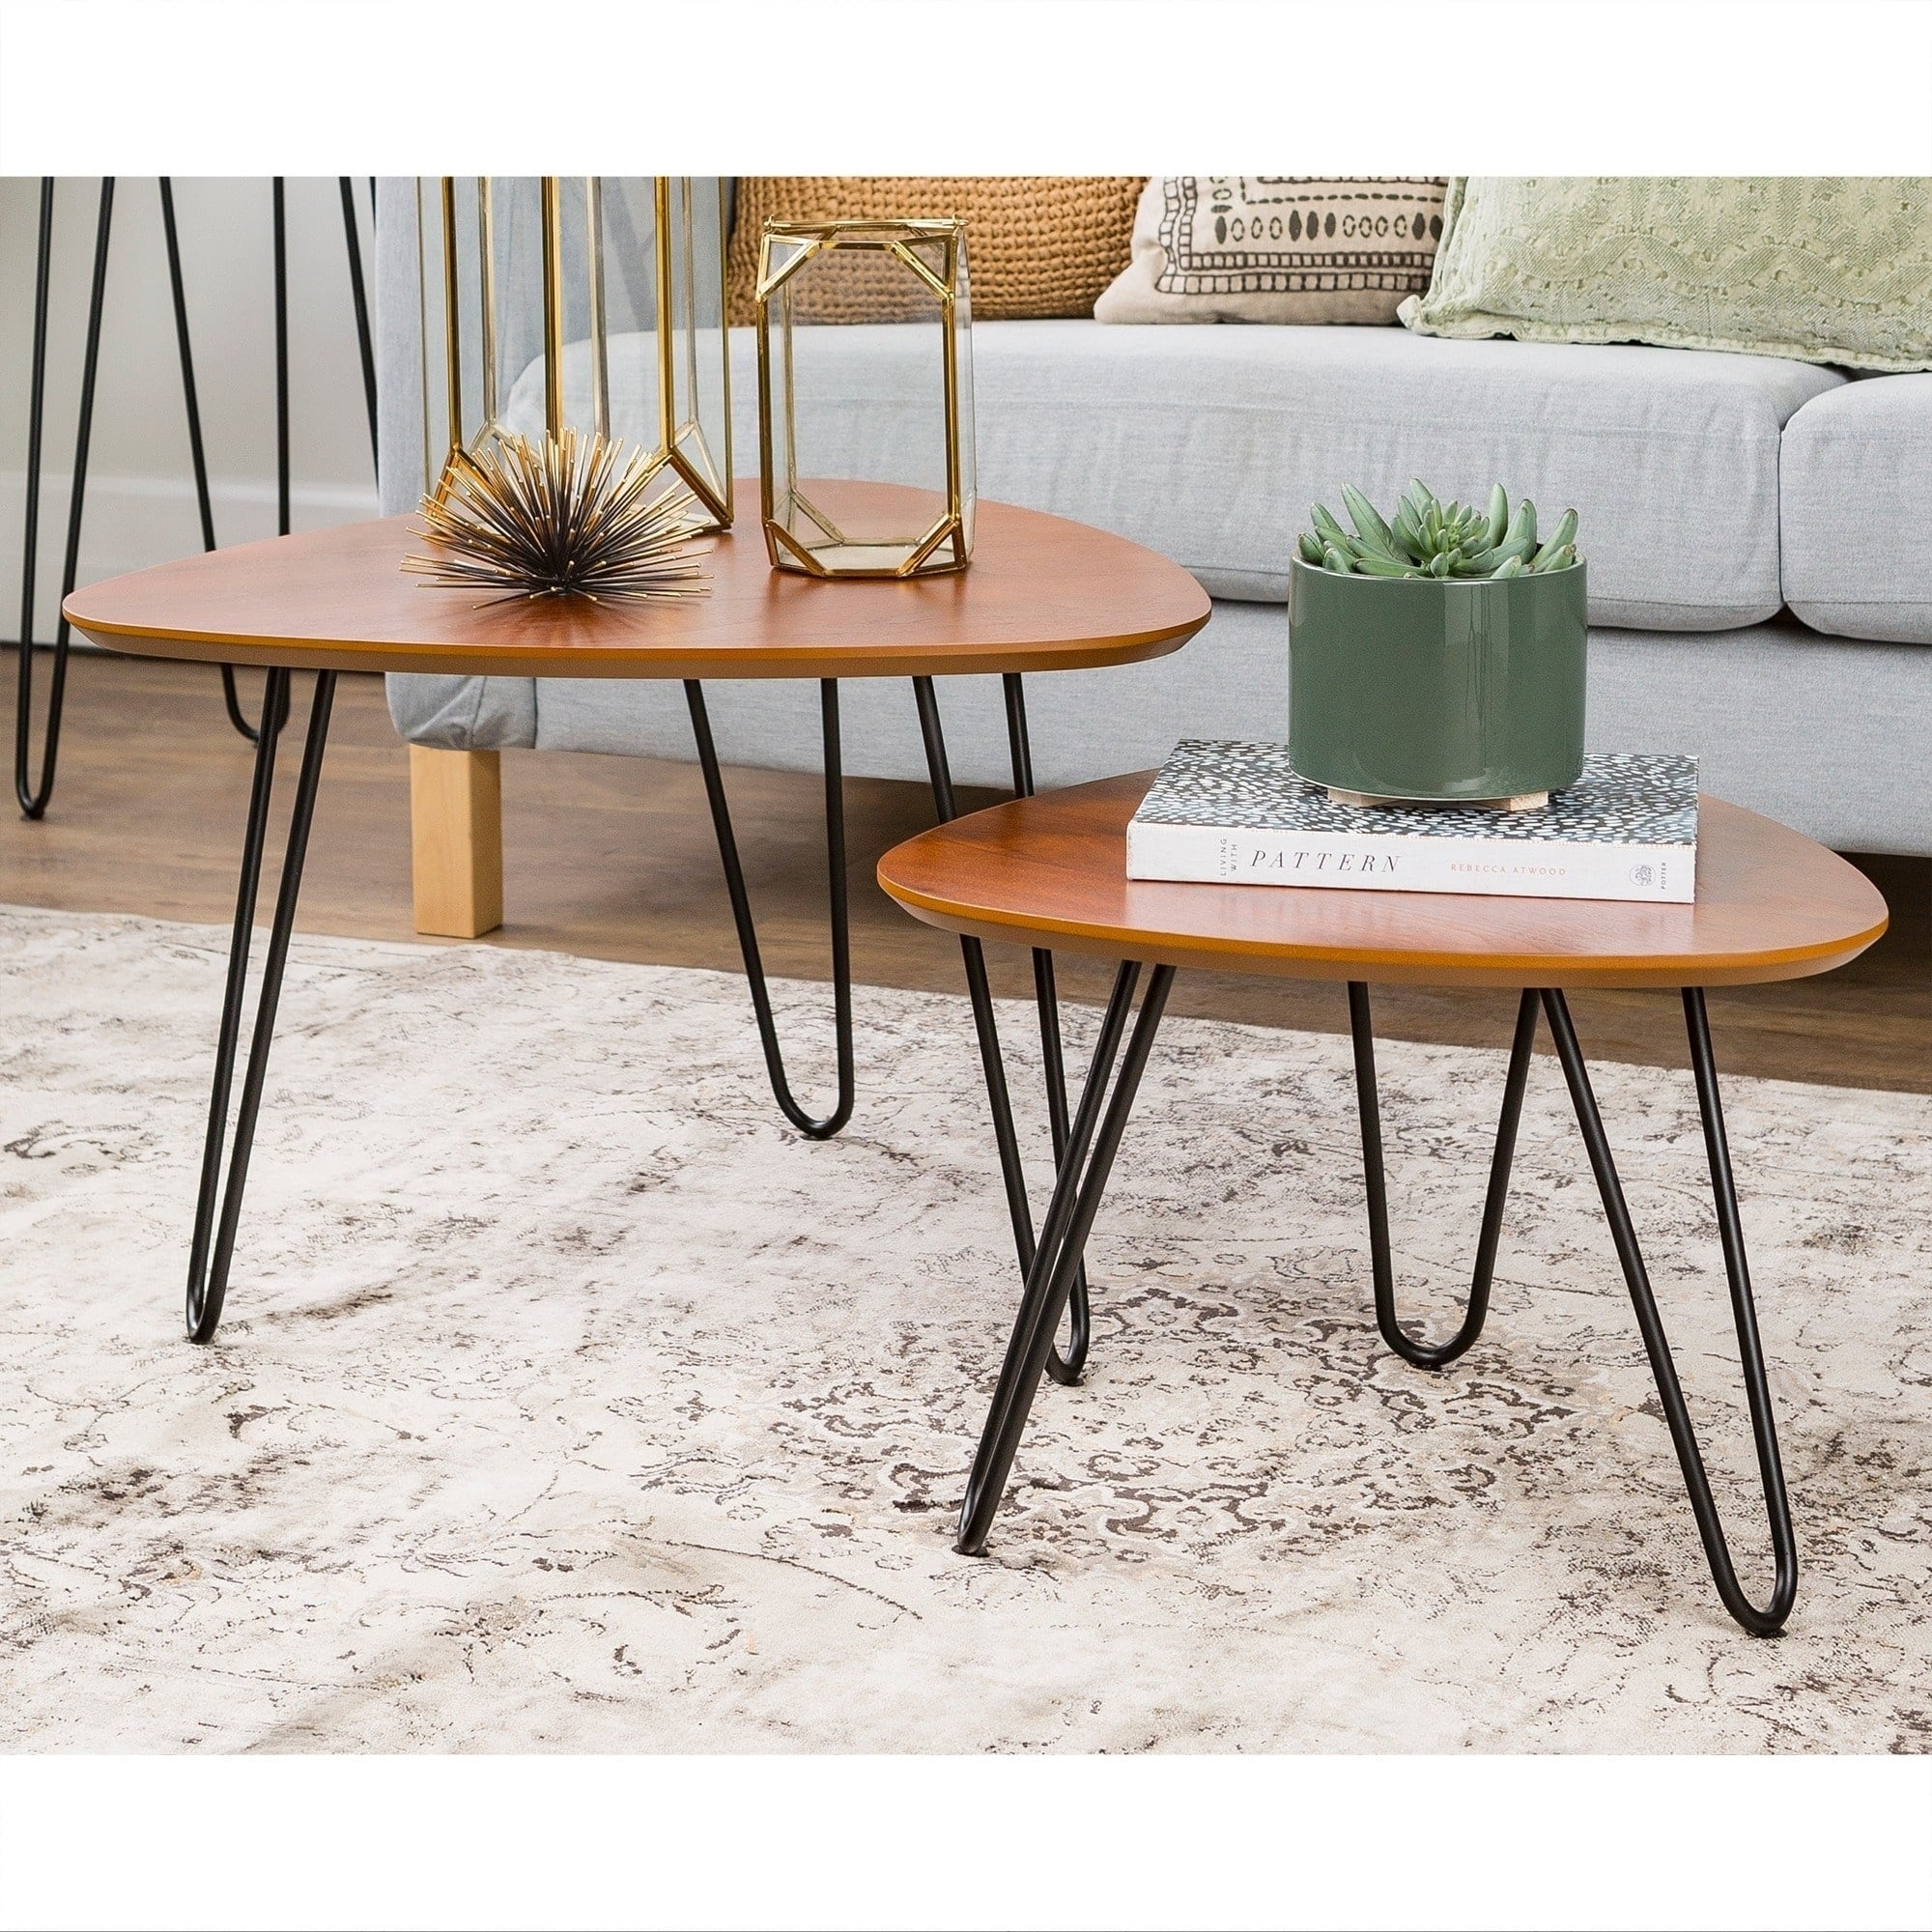 kohls percent coupon code probably fantastic nice walnut coffee hairpin leg wood nesting table set free and end round outdoor side clearance iron pipe desk discontinued ashley